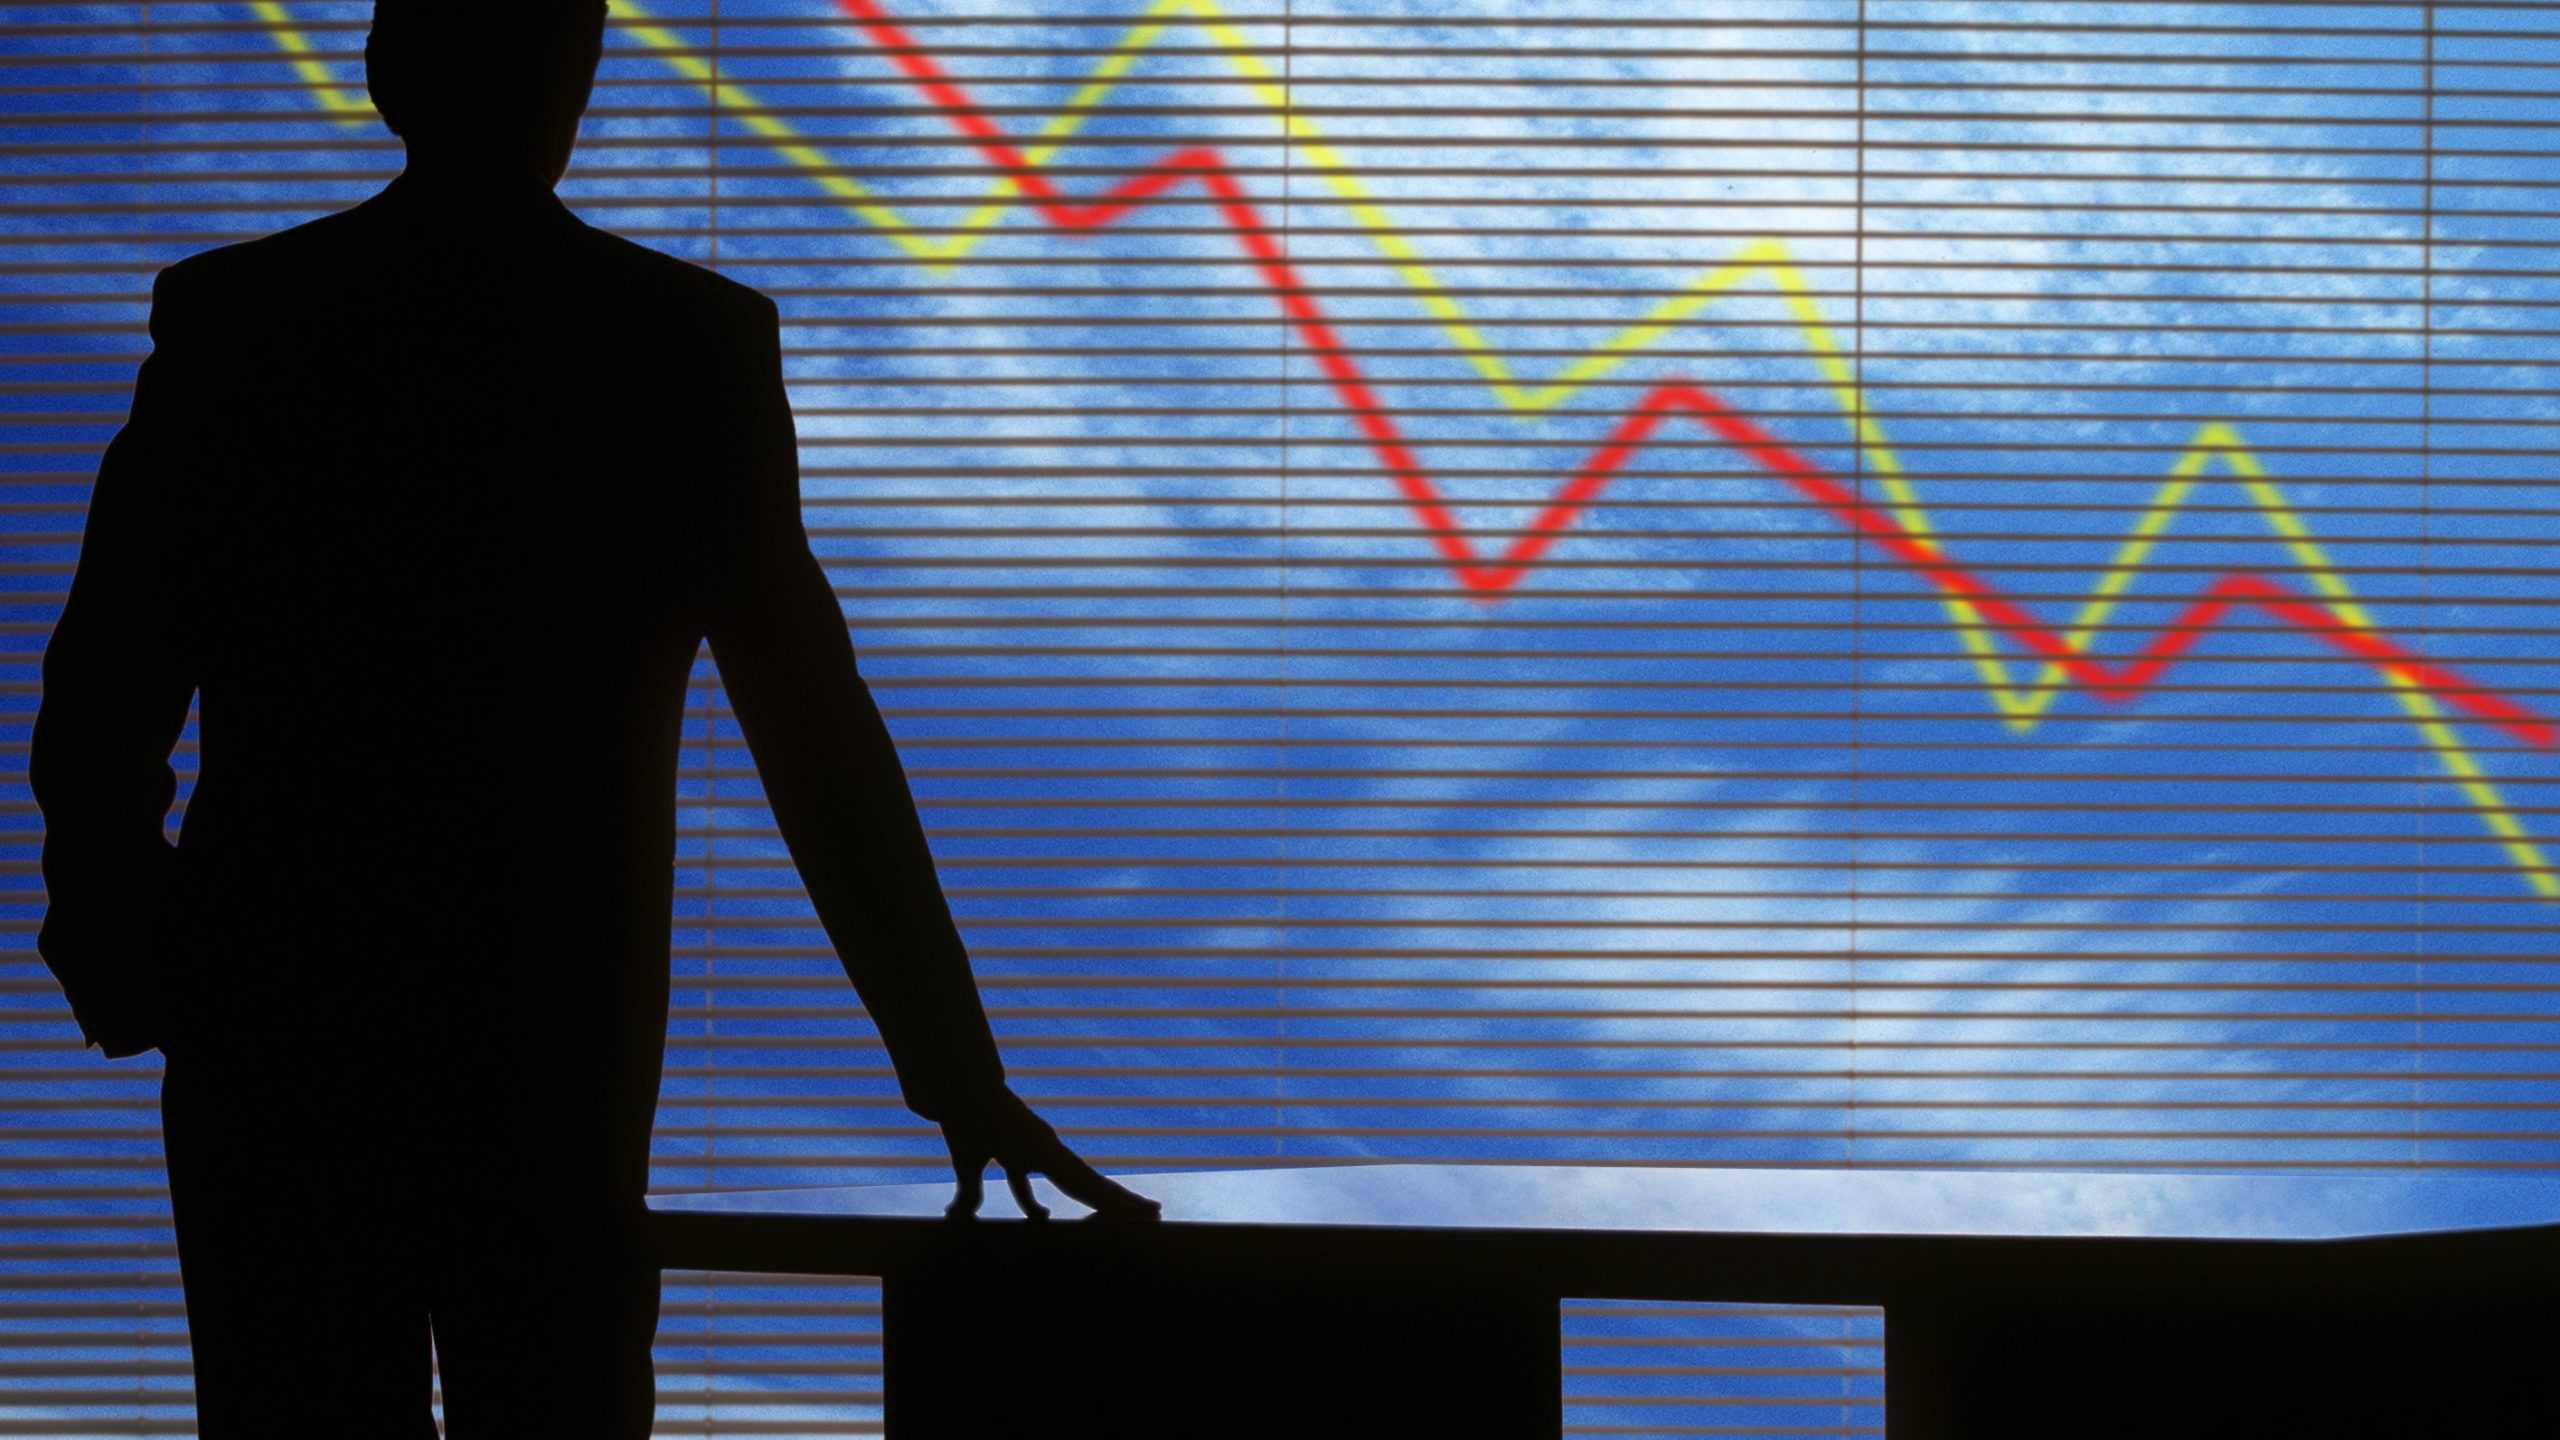 shadow of a man looking out a window with arrows signifying falling share price